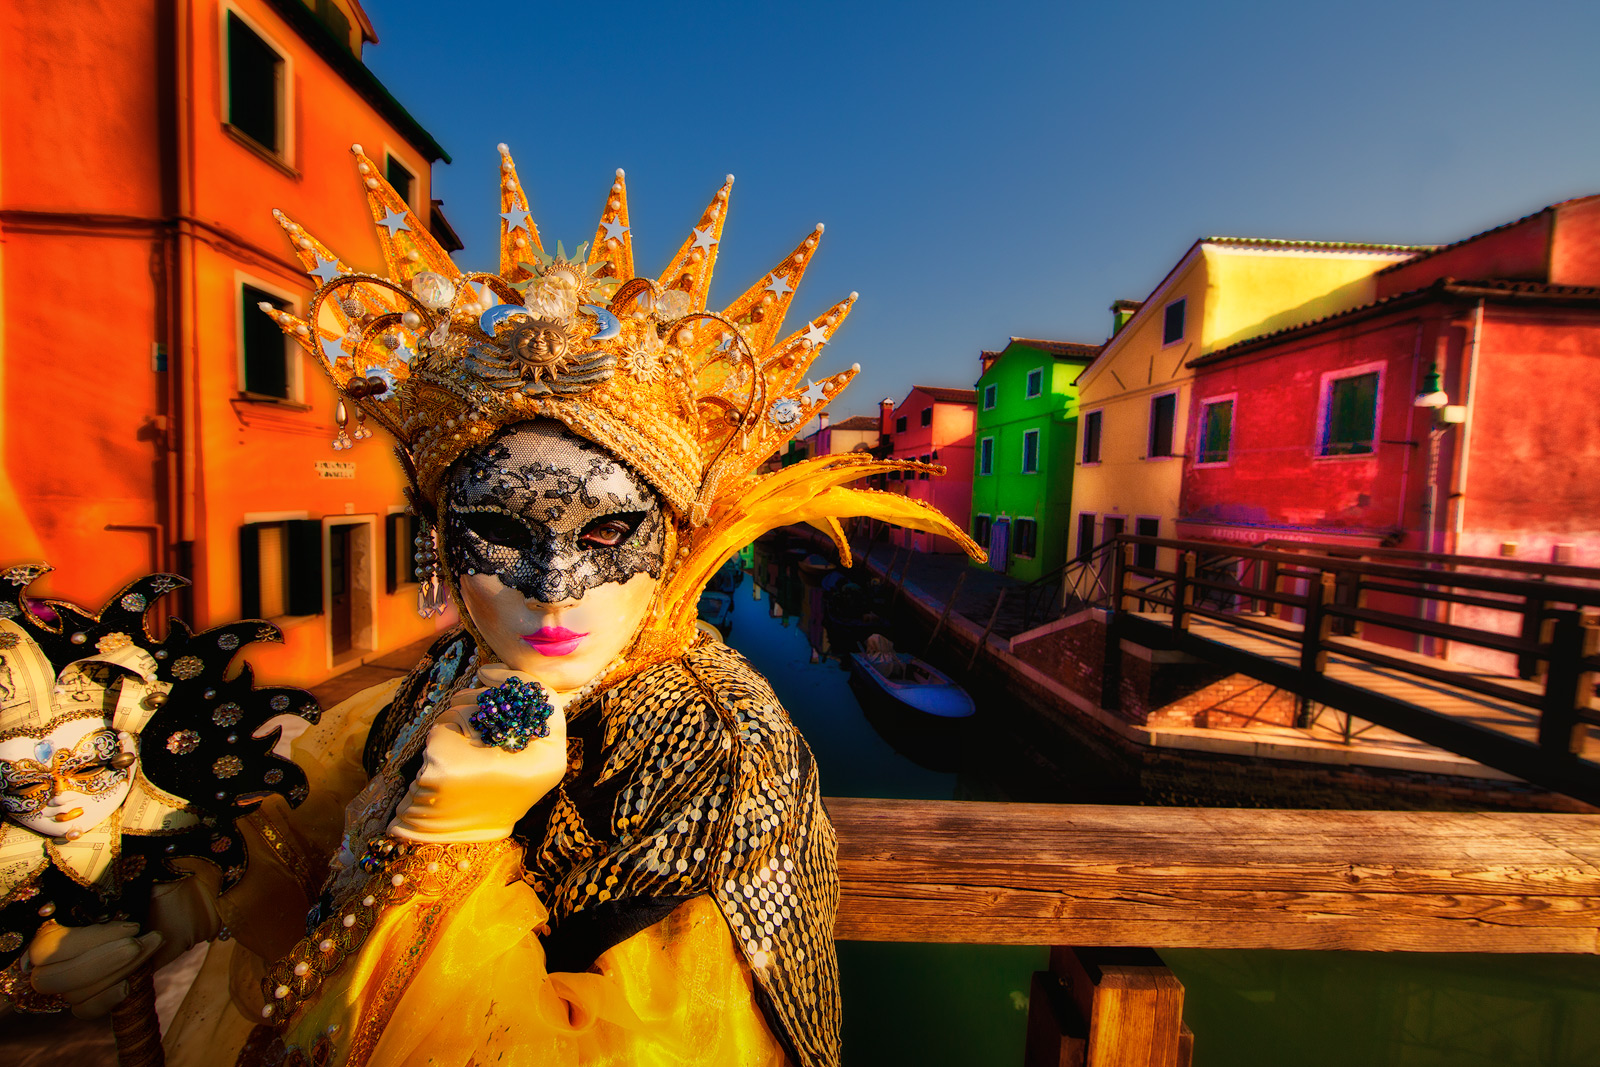 burano, burano island, canal, carnival, celebration, colorful, costume, europe, horizontal, italy, mask, party, venice, yellow, photo